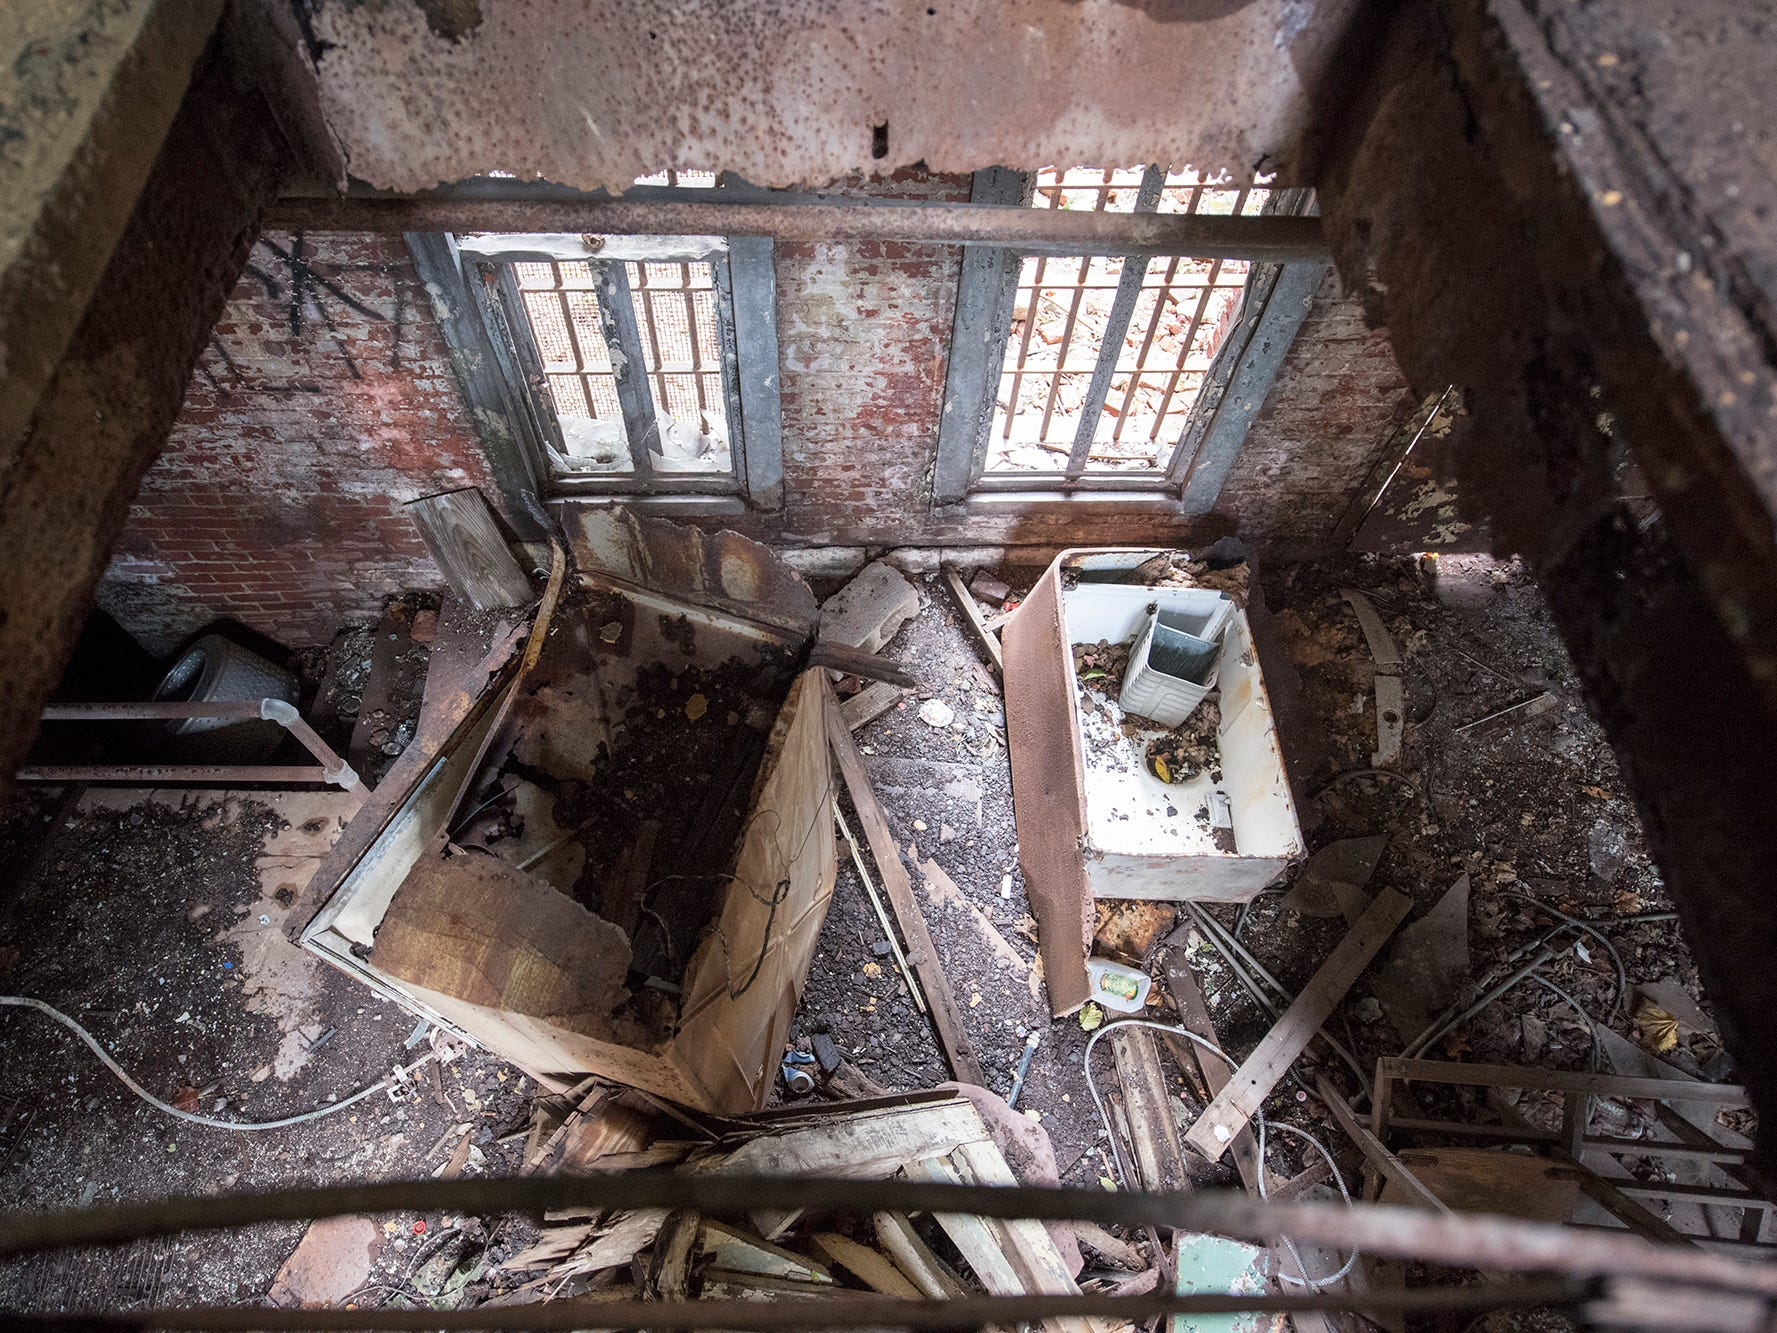 This is looking down inside the trap door of what some say were the gallows at the old York County Prison.